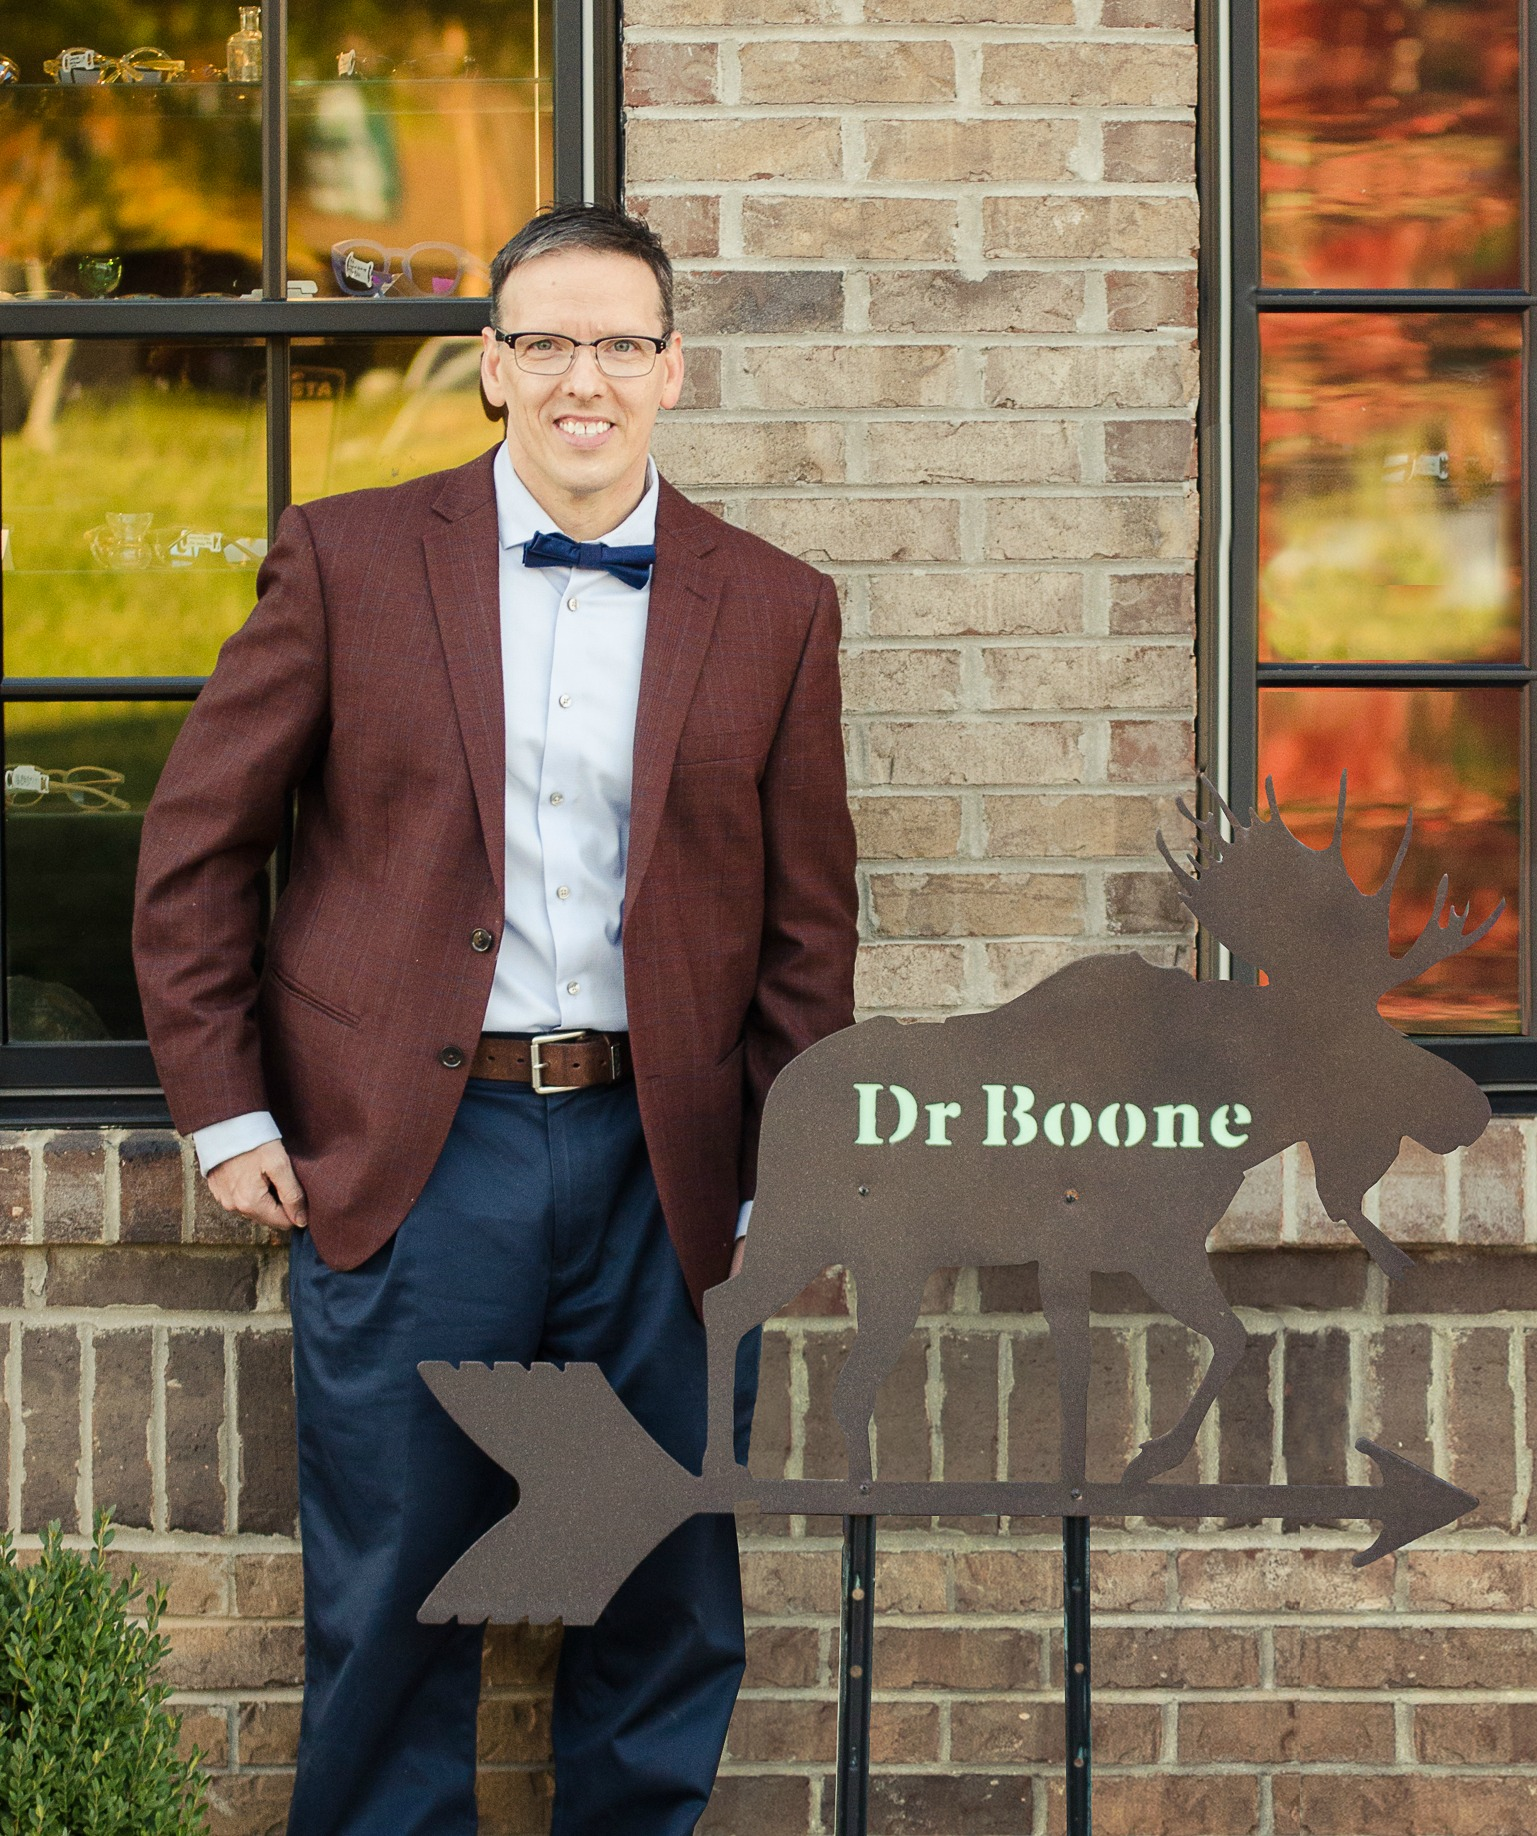 Dr. Frank Boone Greenville Eye Doctor Greenville SC at Upstate Eye Care